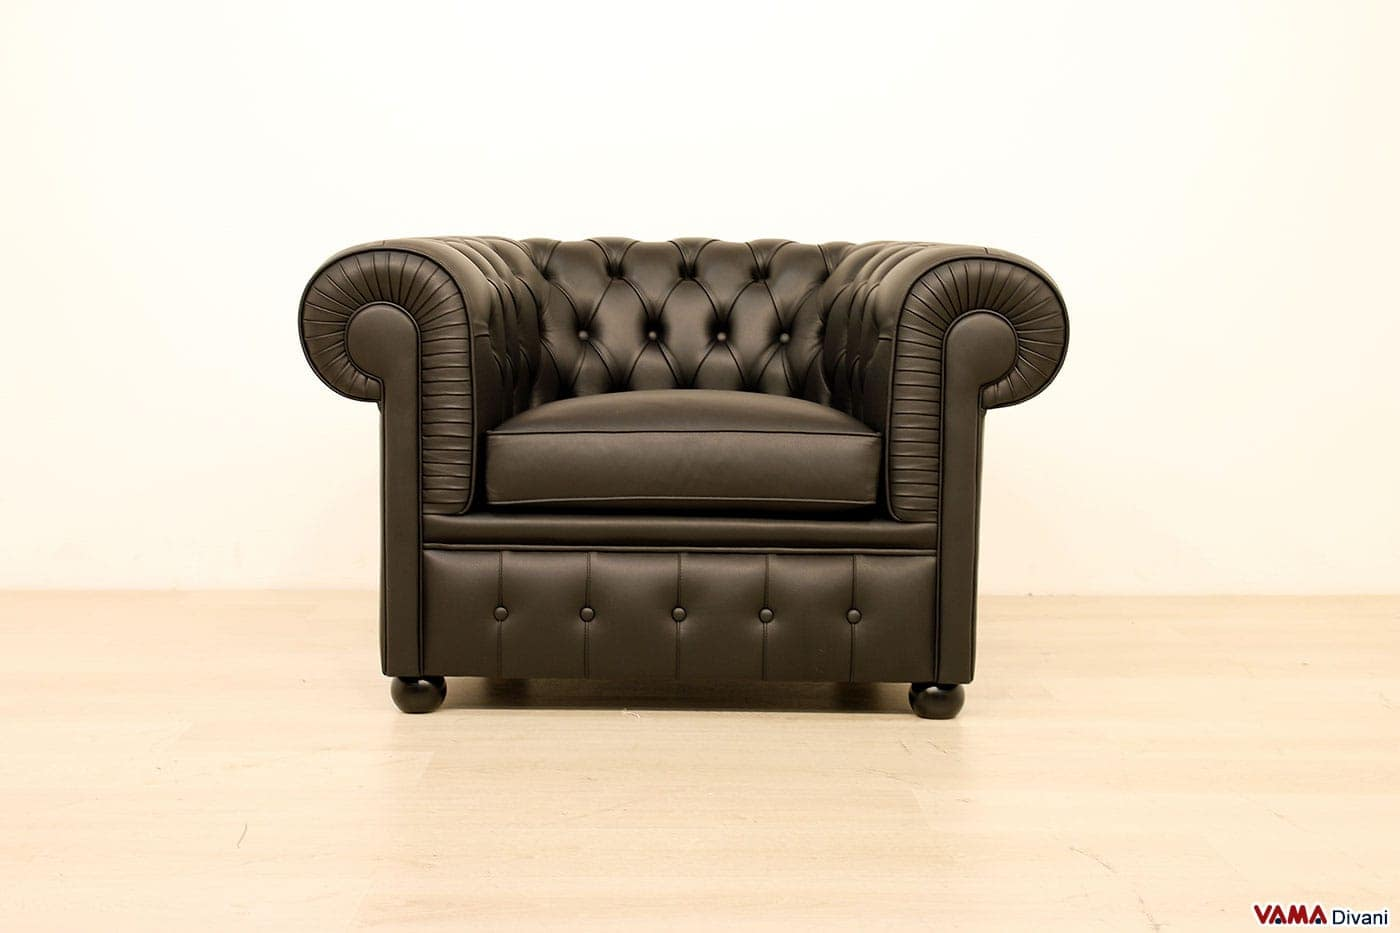 Poltrone Chesterfield Prezzi.Poltrona Chesterfield